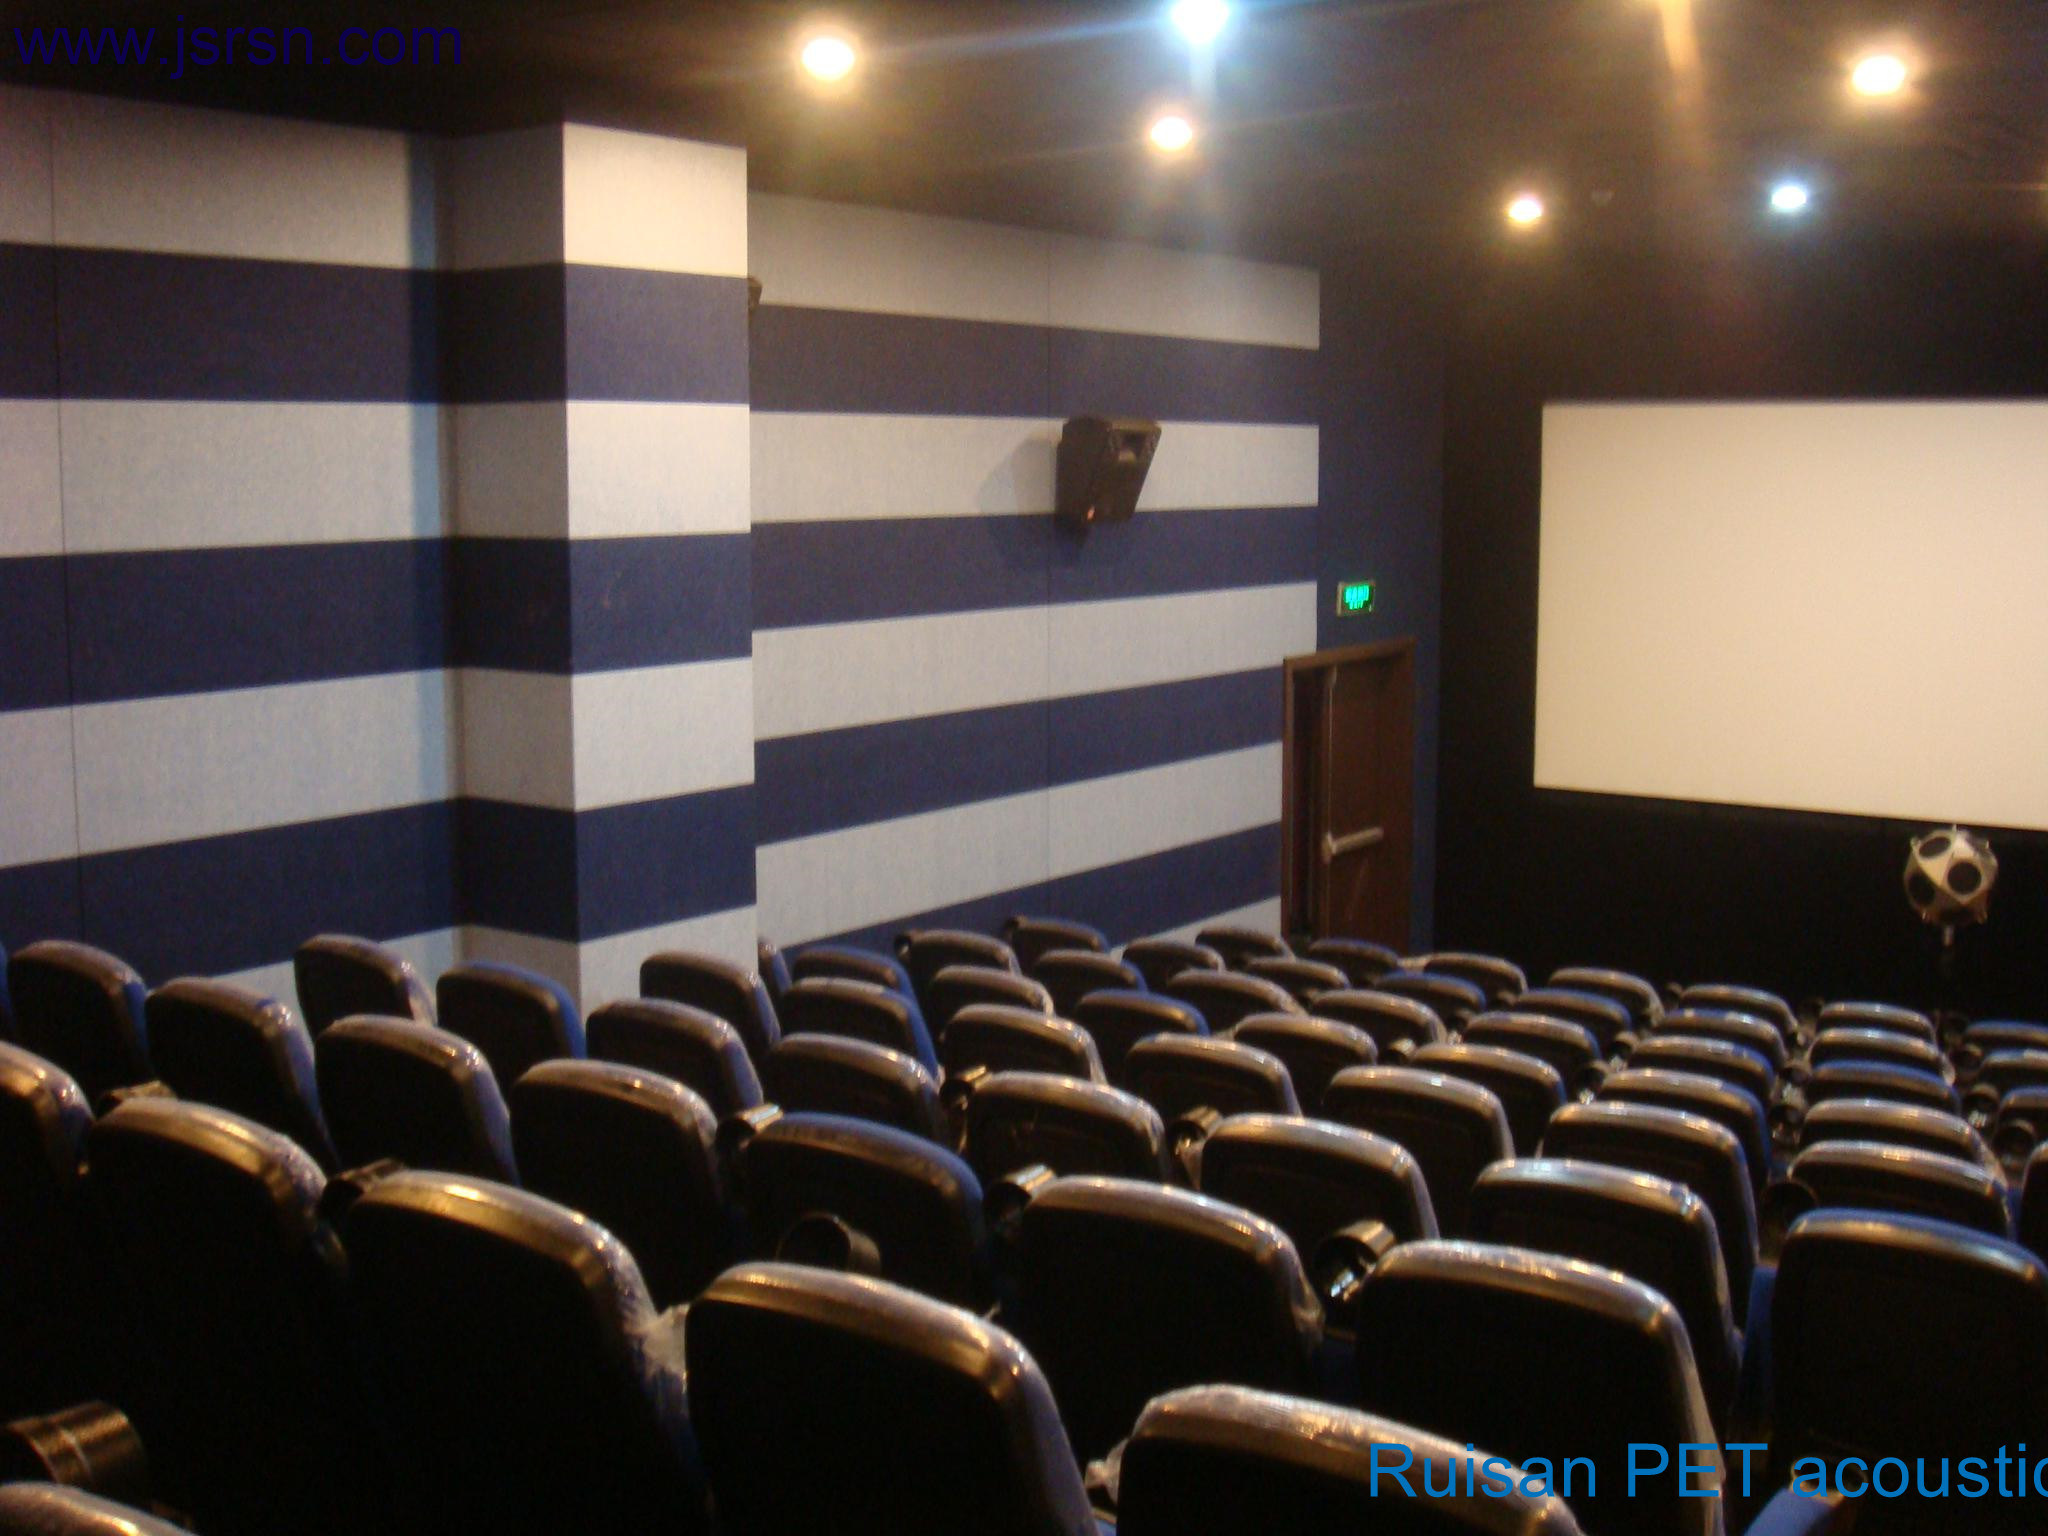 Blue Pet Acoustic Panel for Cinema